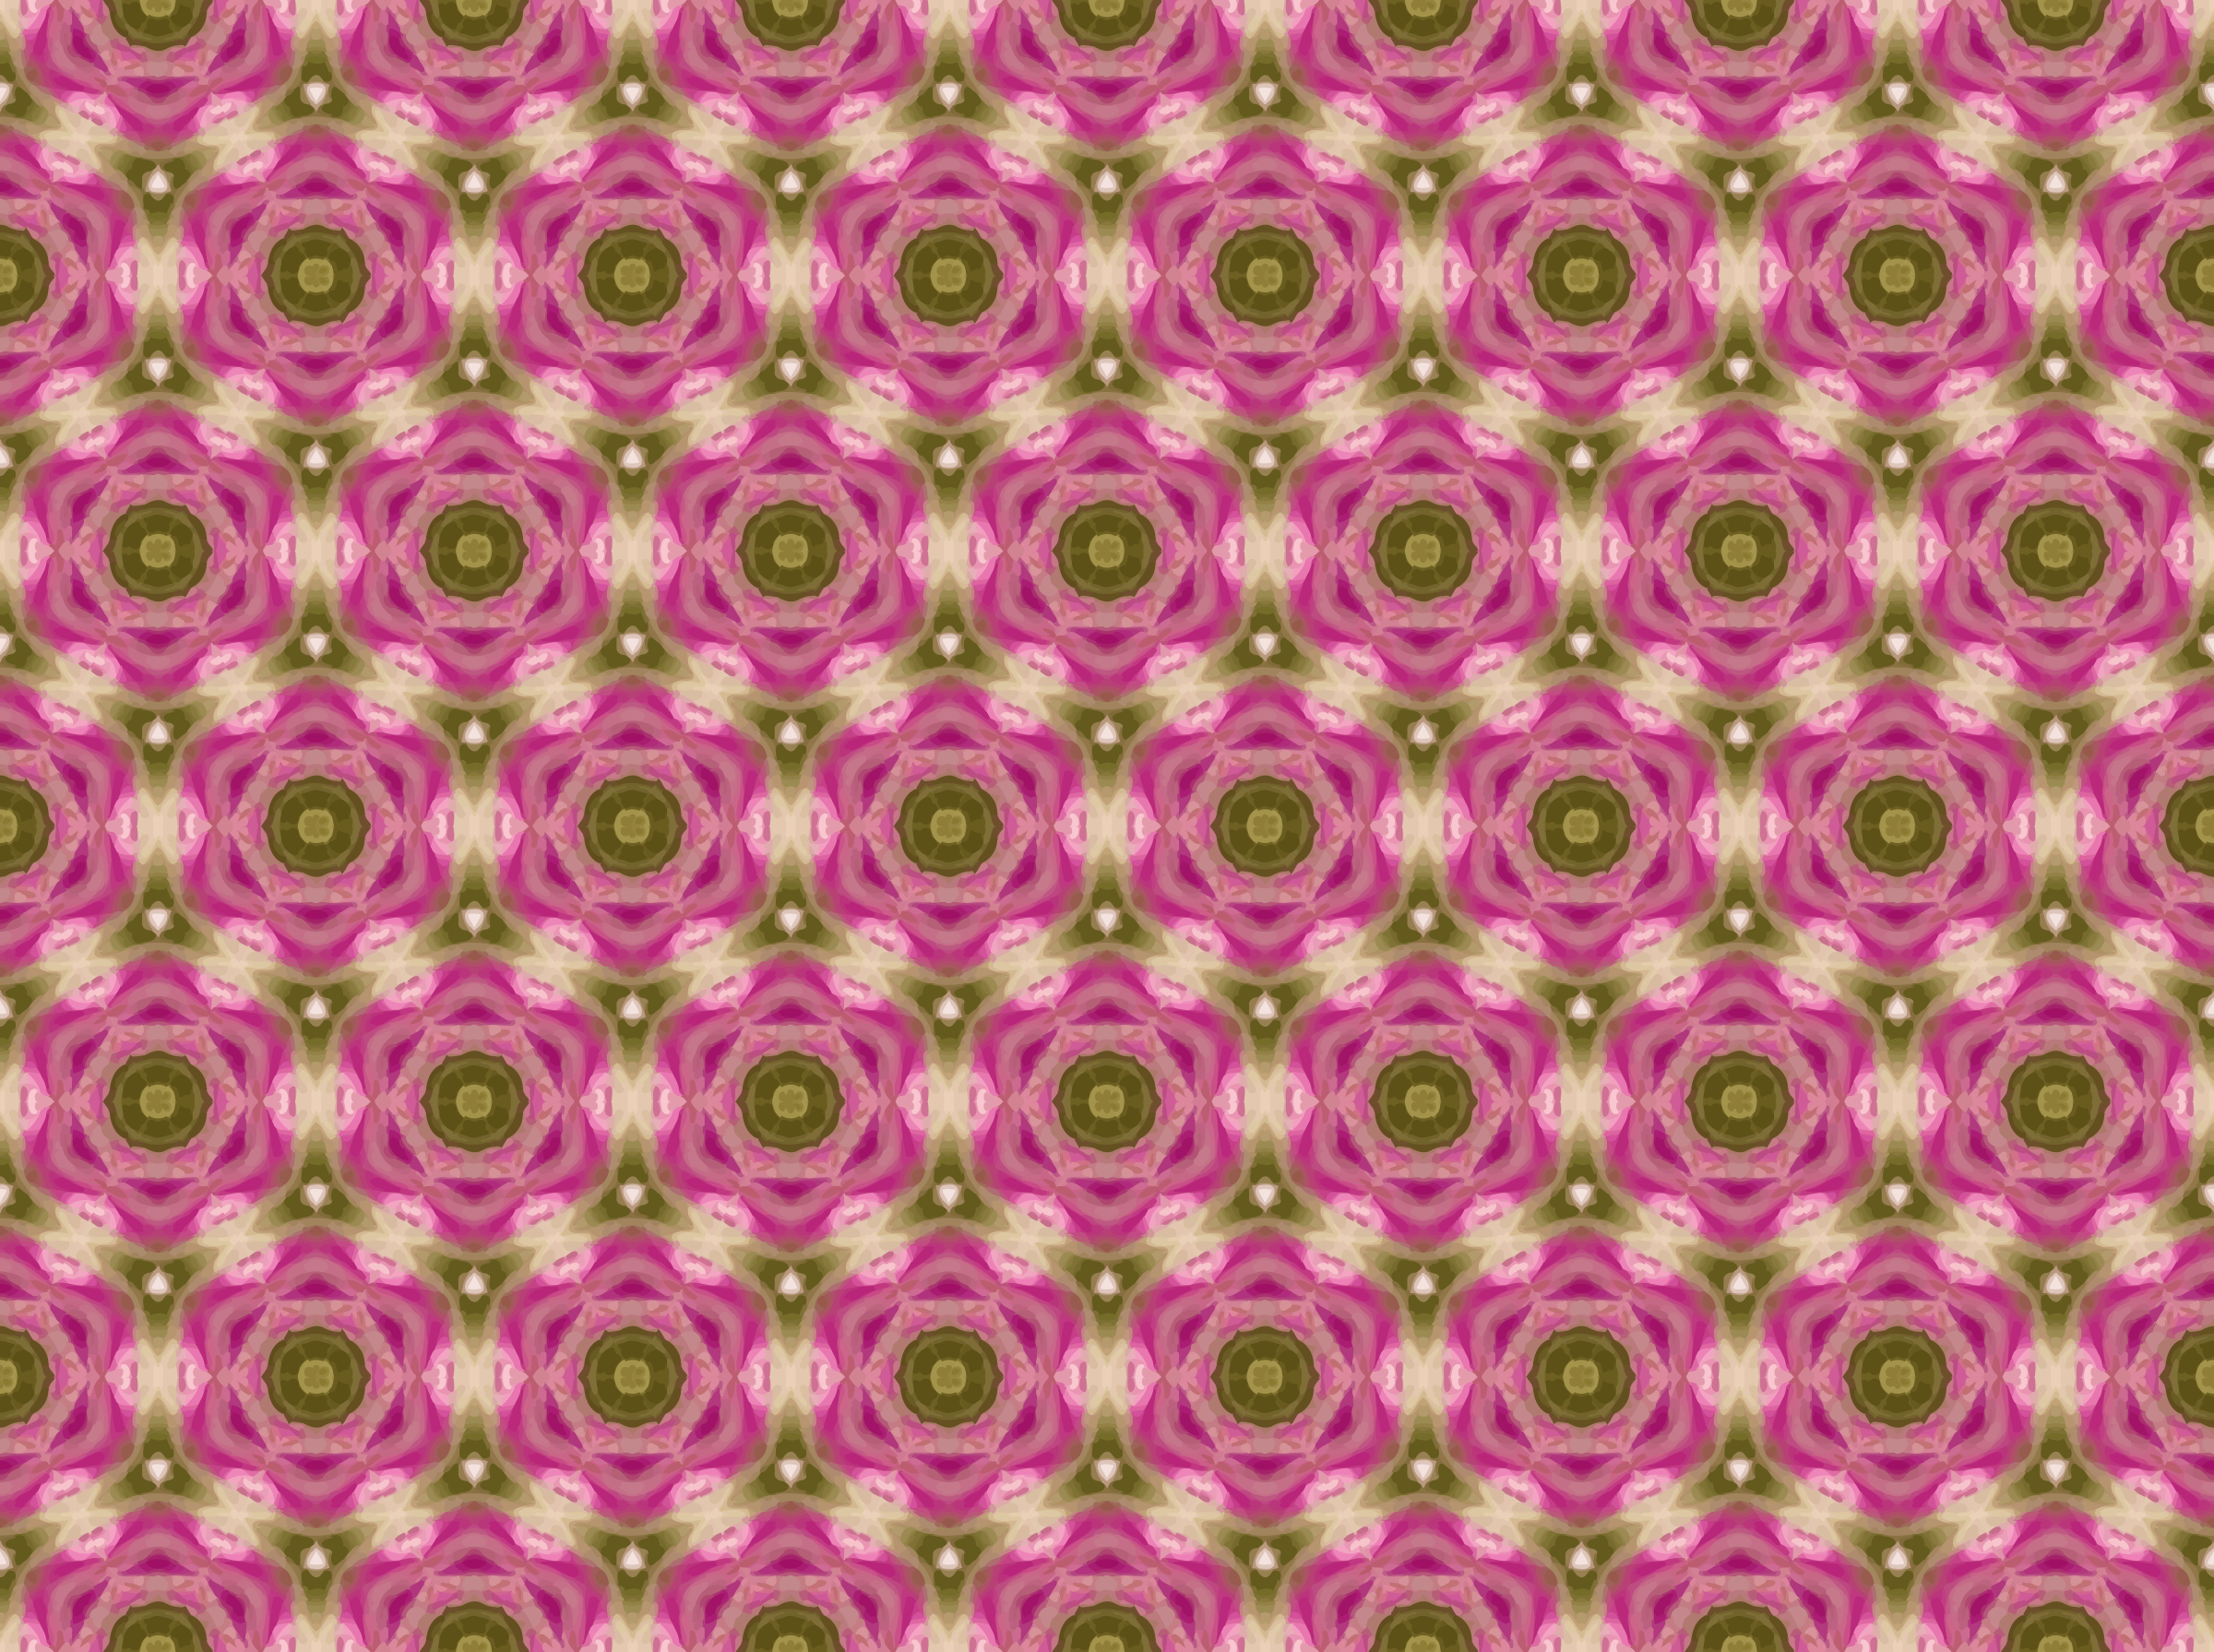 Background pattern 98 by Firkin